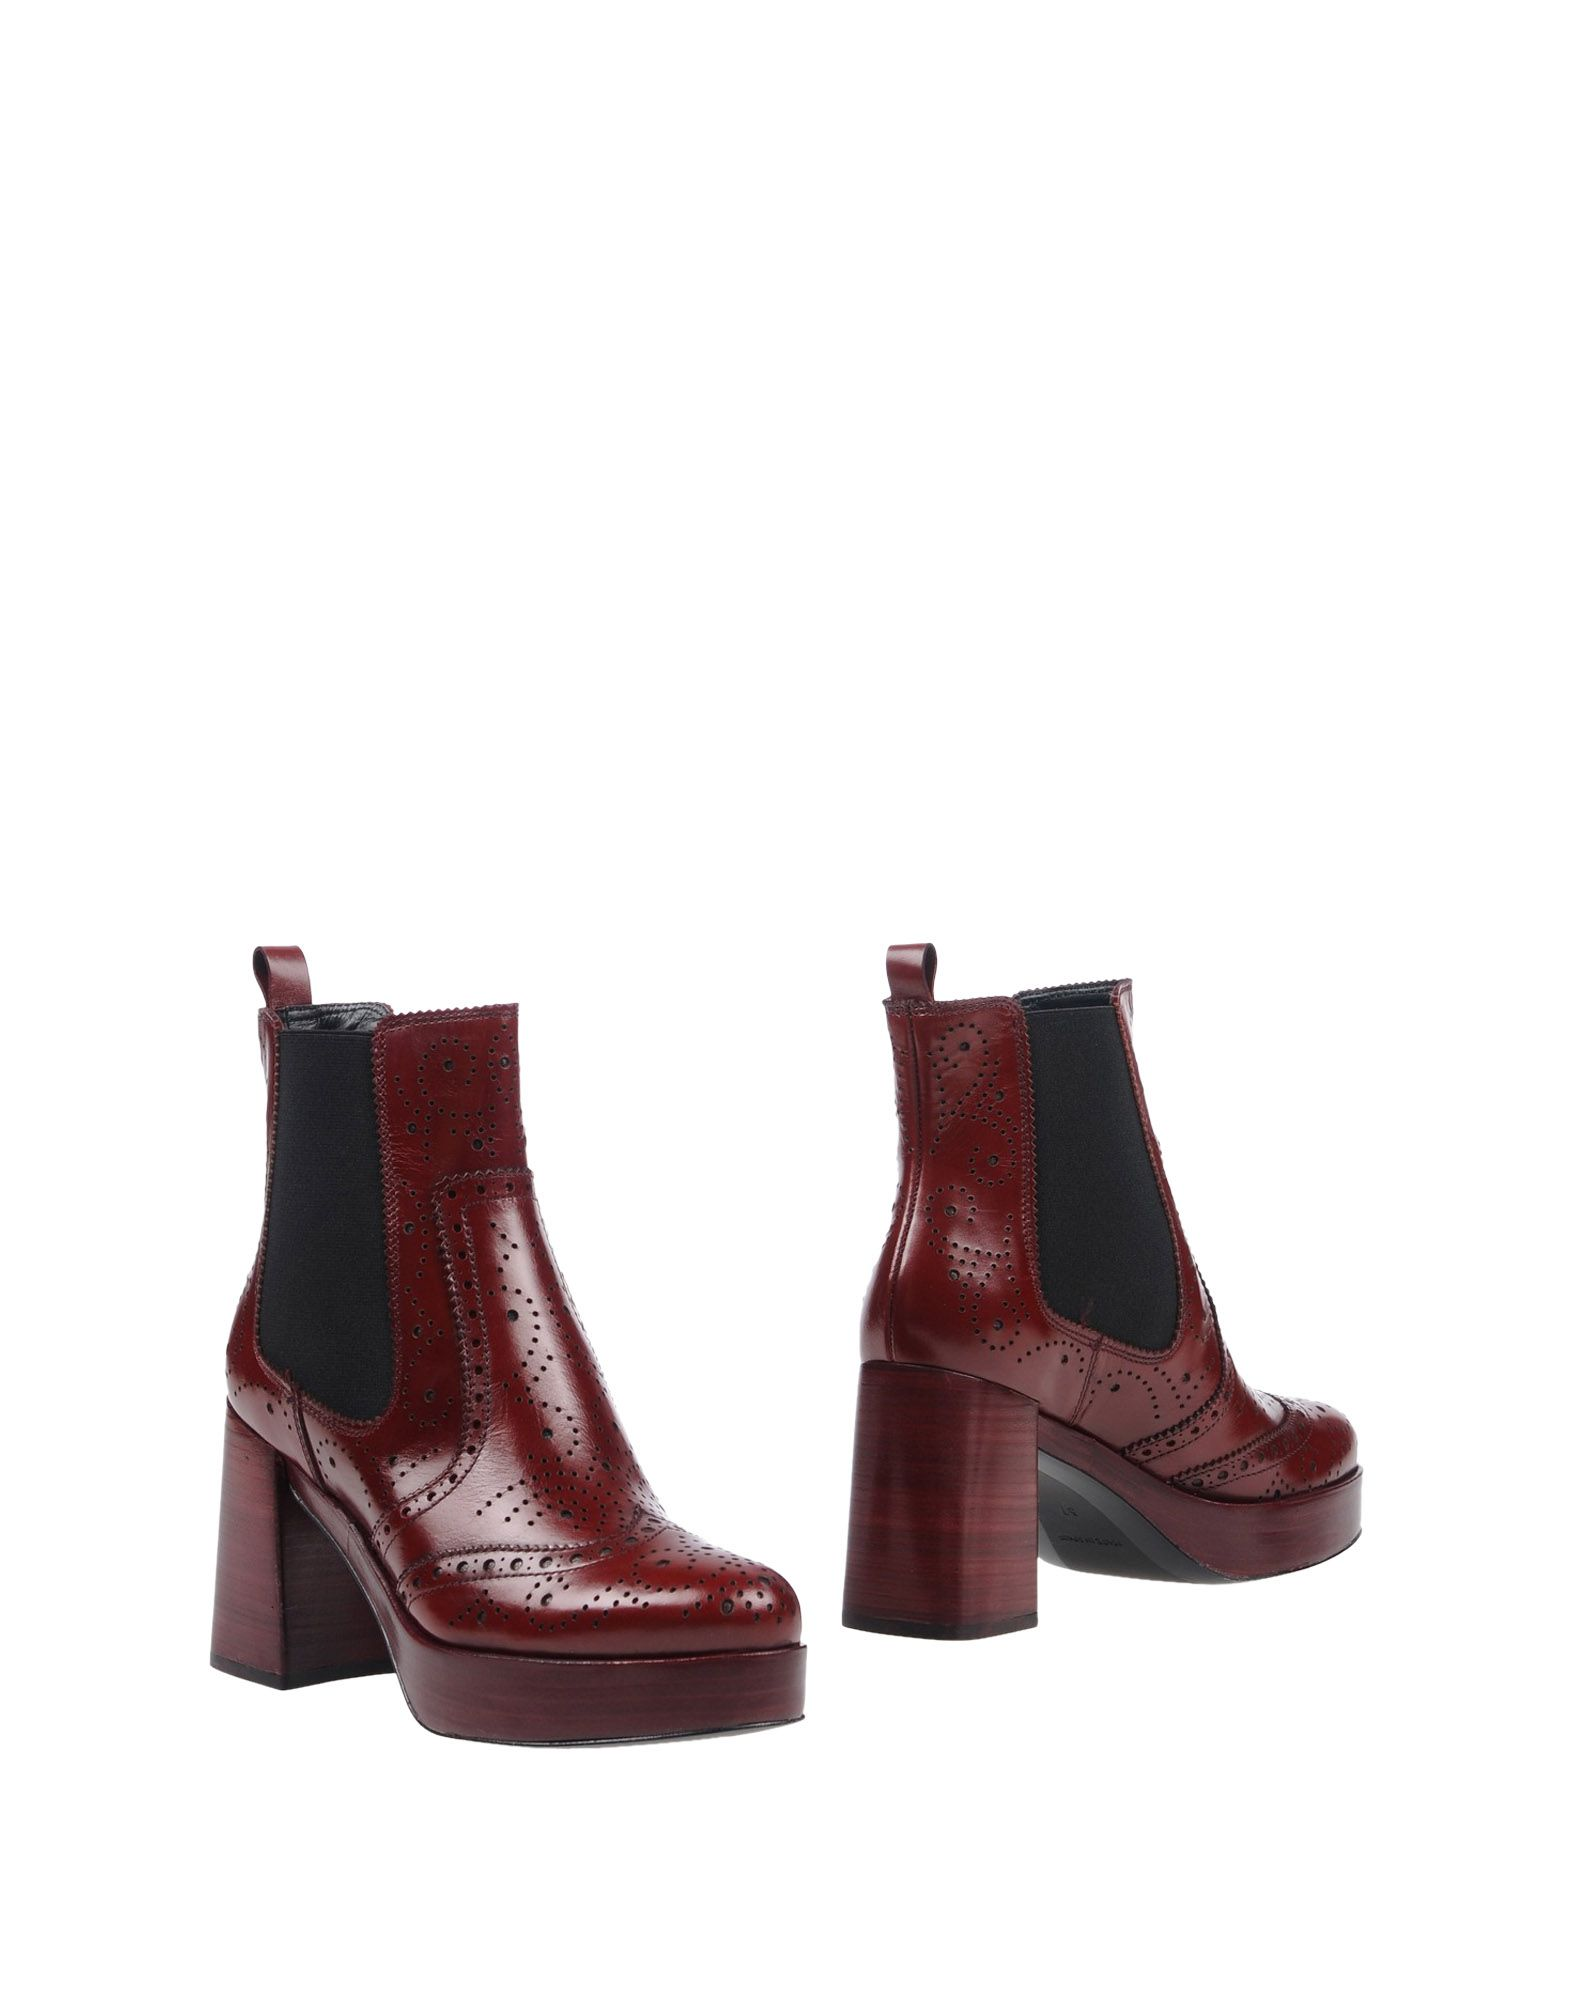 PONS QUINTANA Ankle Boot in Maroon